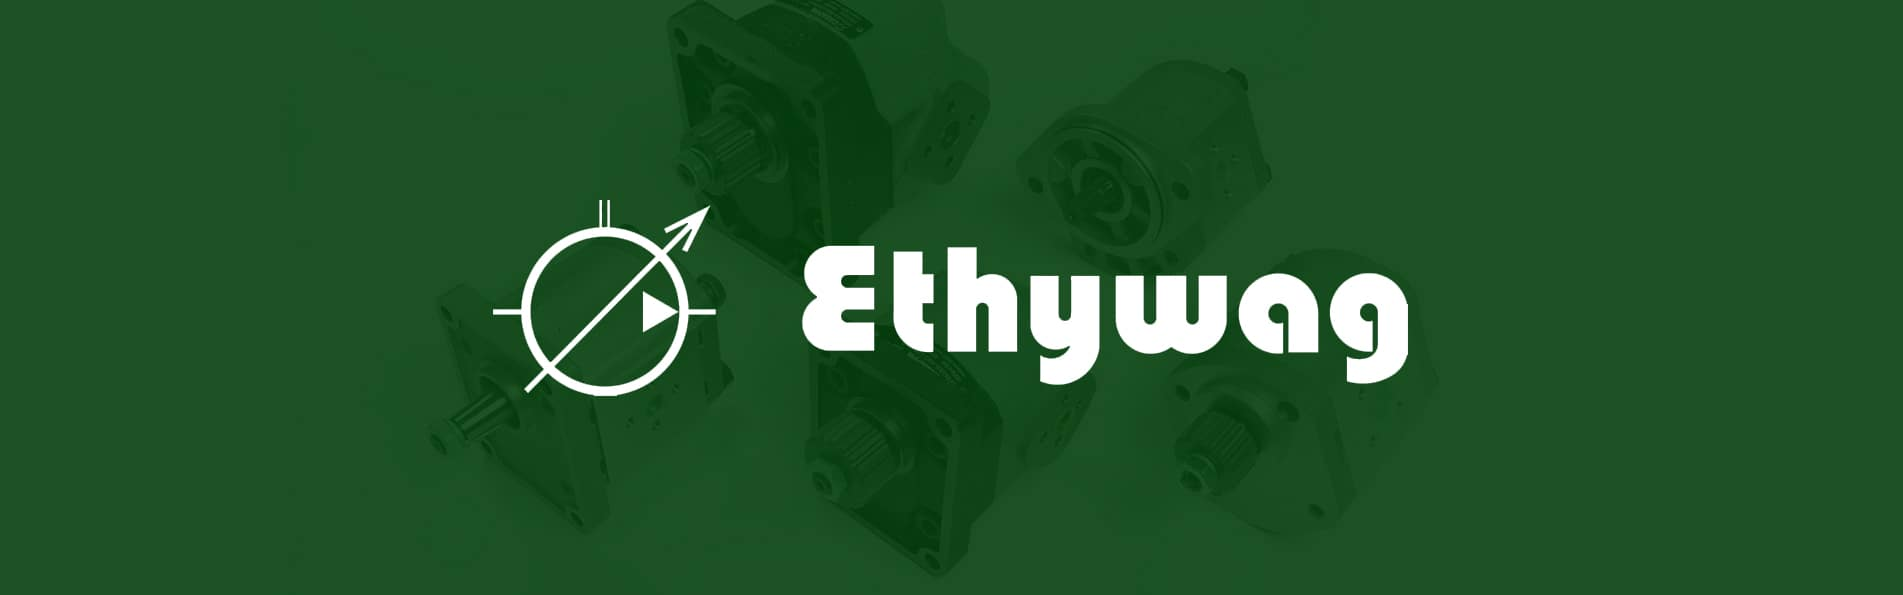 ethywag-webdesign-2